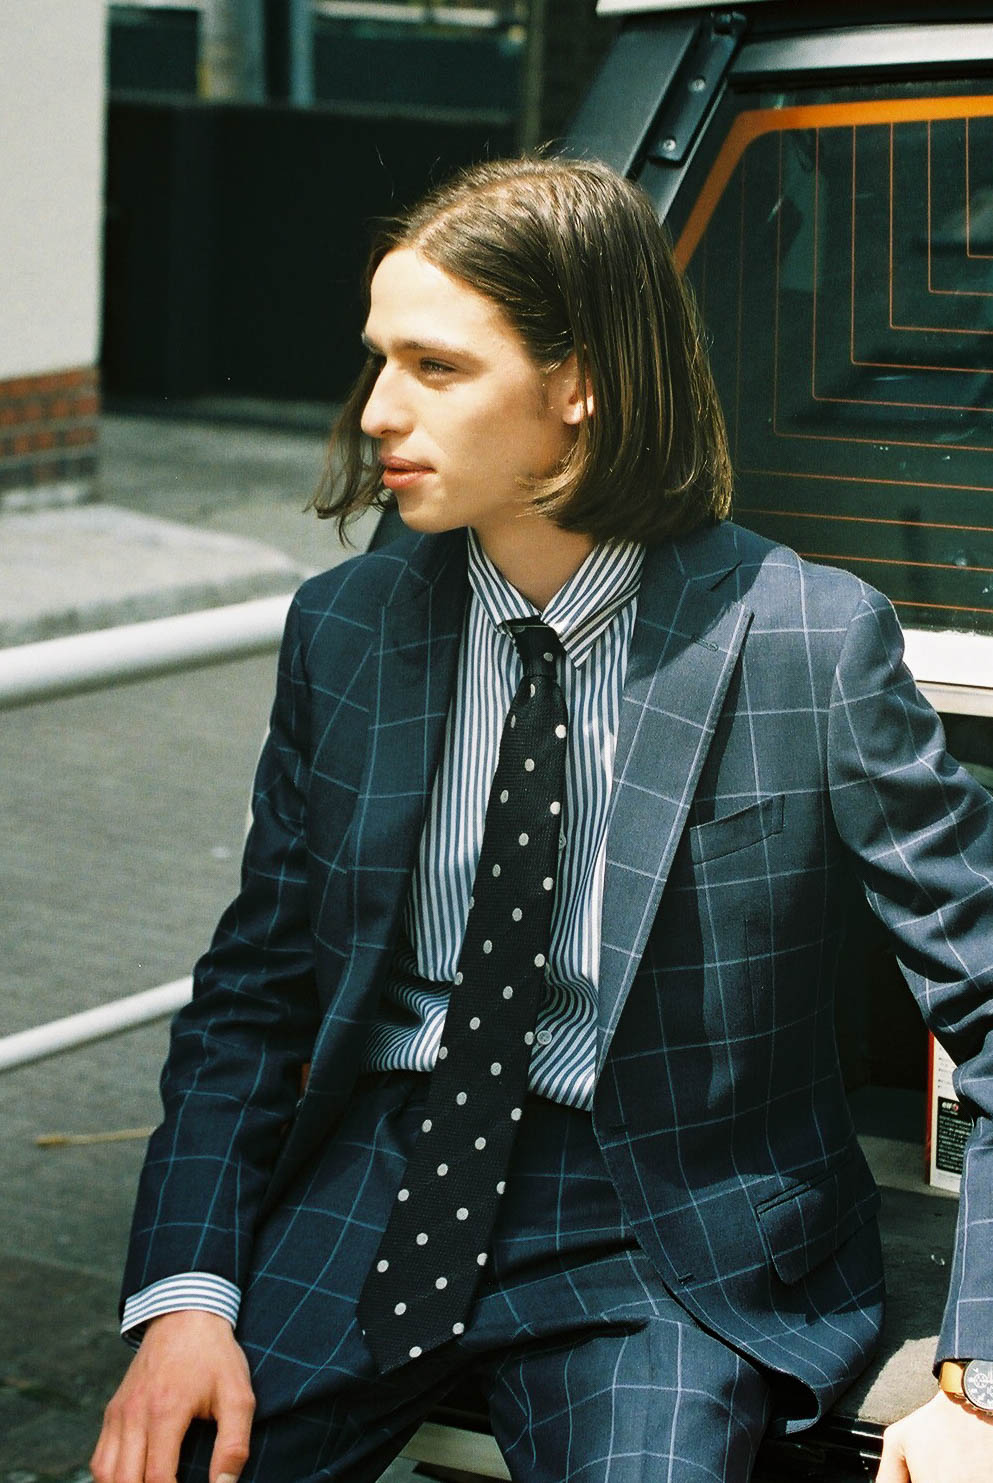 The Suit Company S/S Look